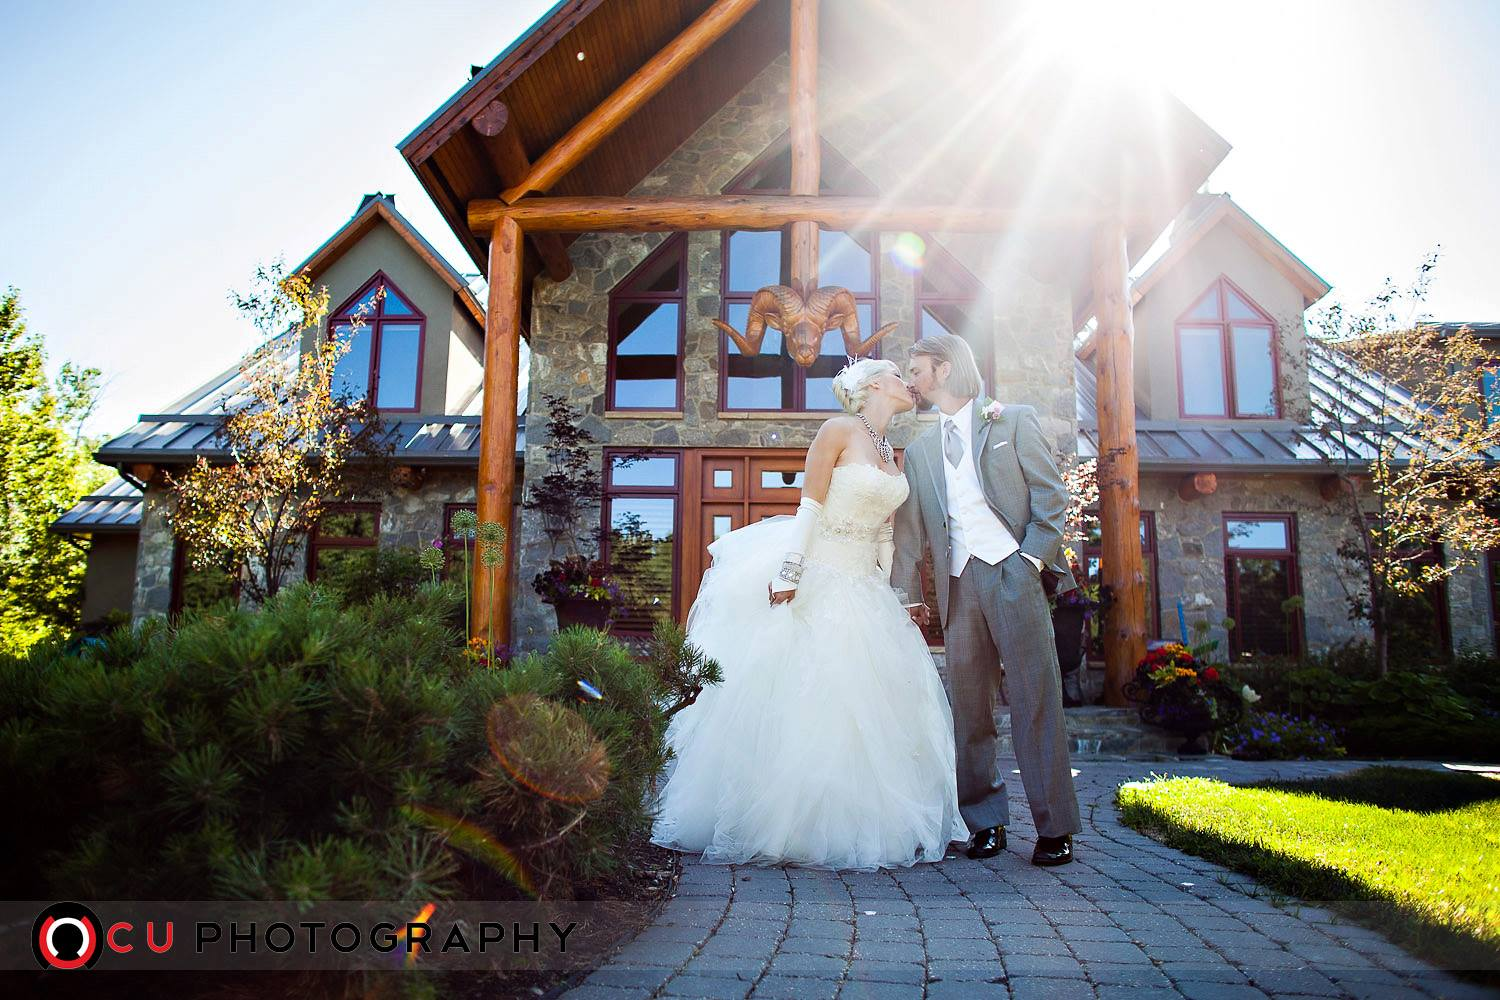 Artistic Wedding Photography in Edmonton